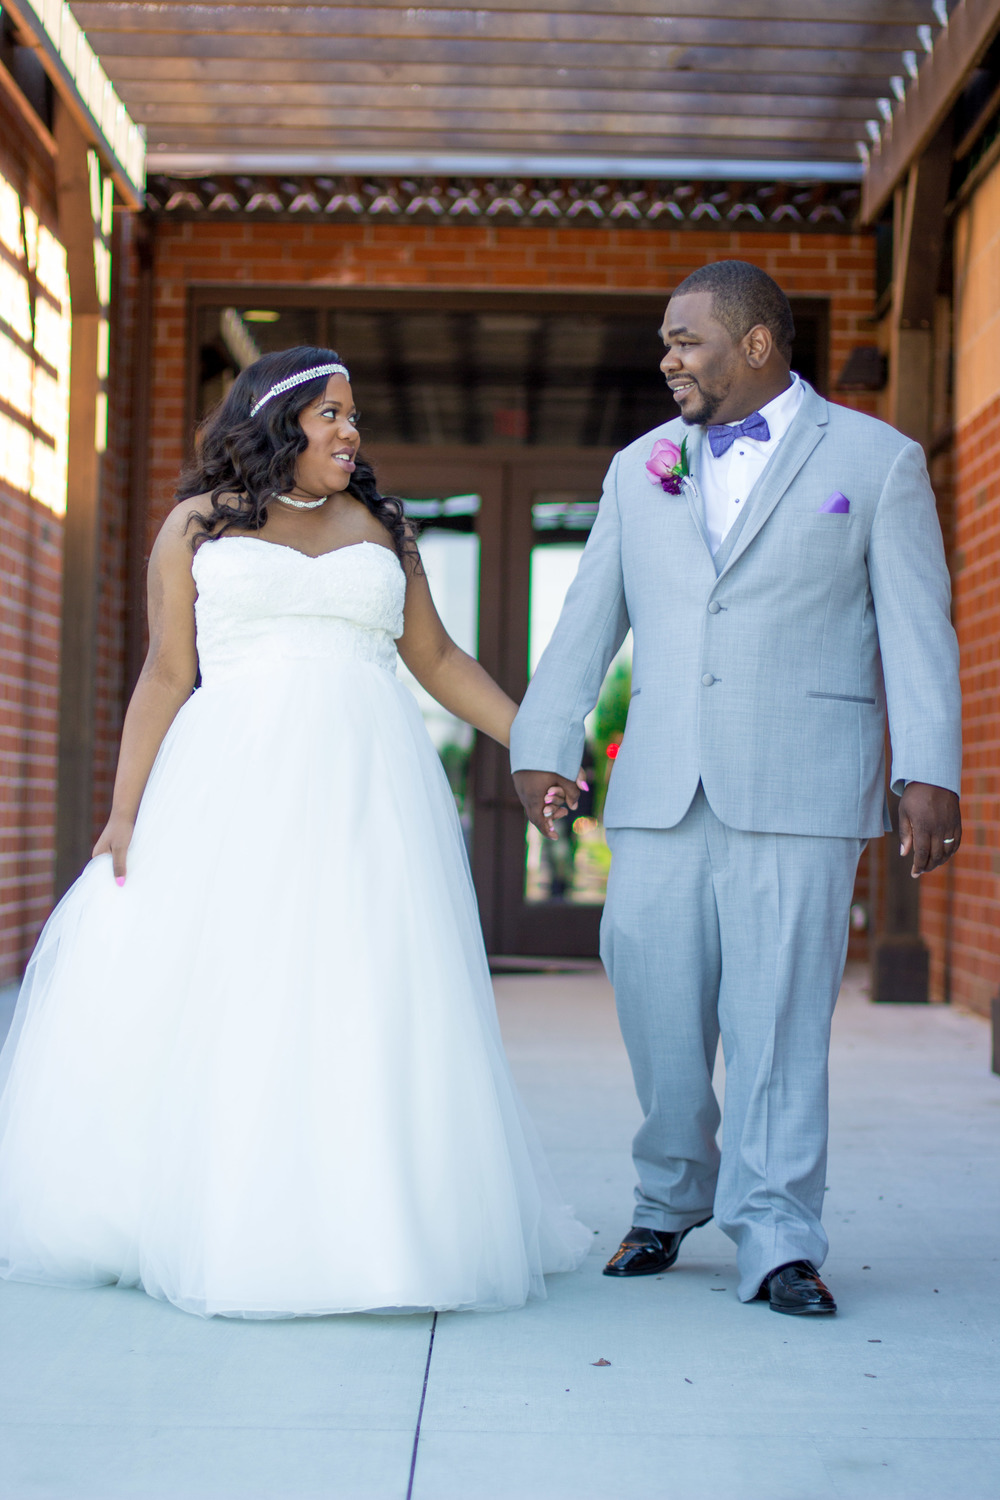 Kendra + Terrance | Greenville NC Wedding | Eastern + Greenville NC Photographer | Bryant Tyson Photography | www.memoriesbybryant.com